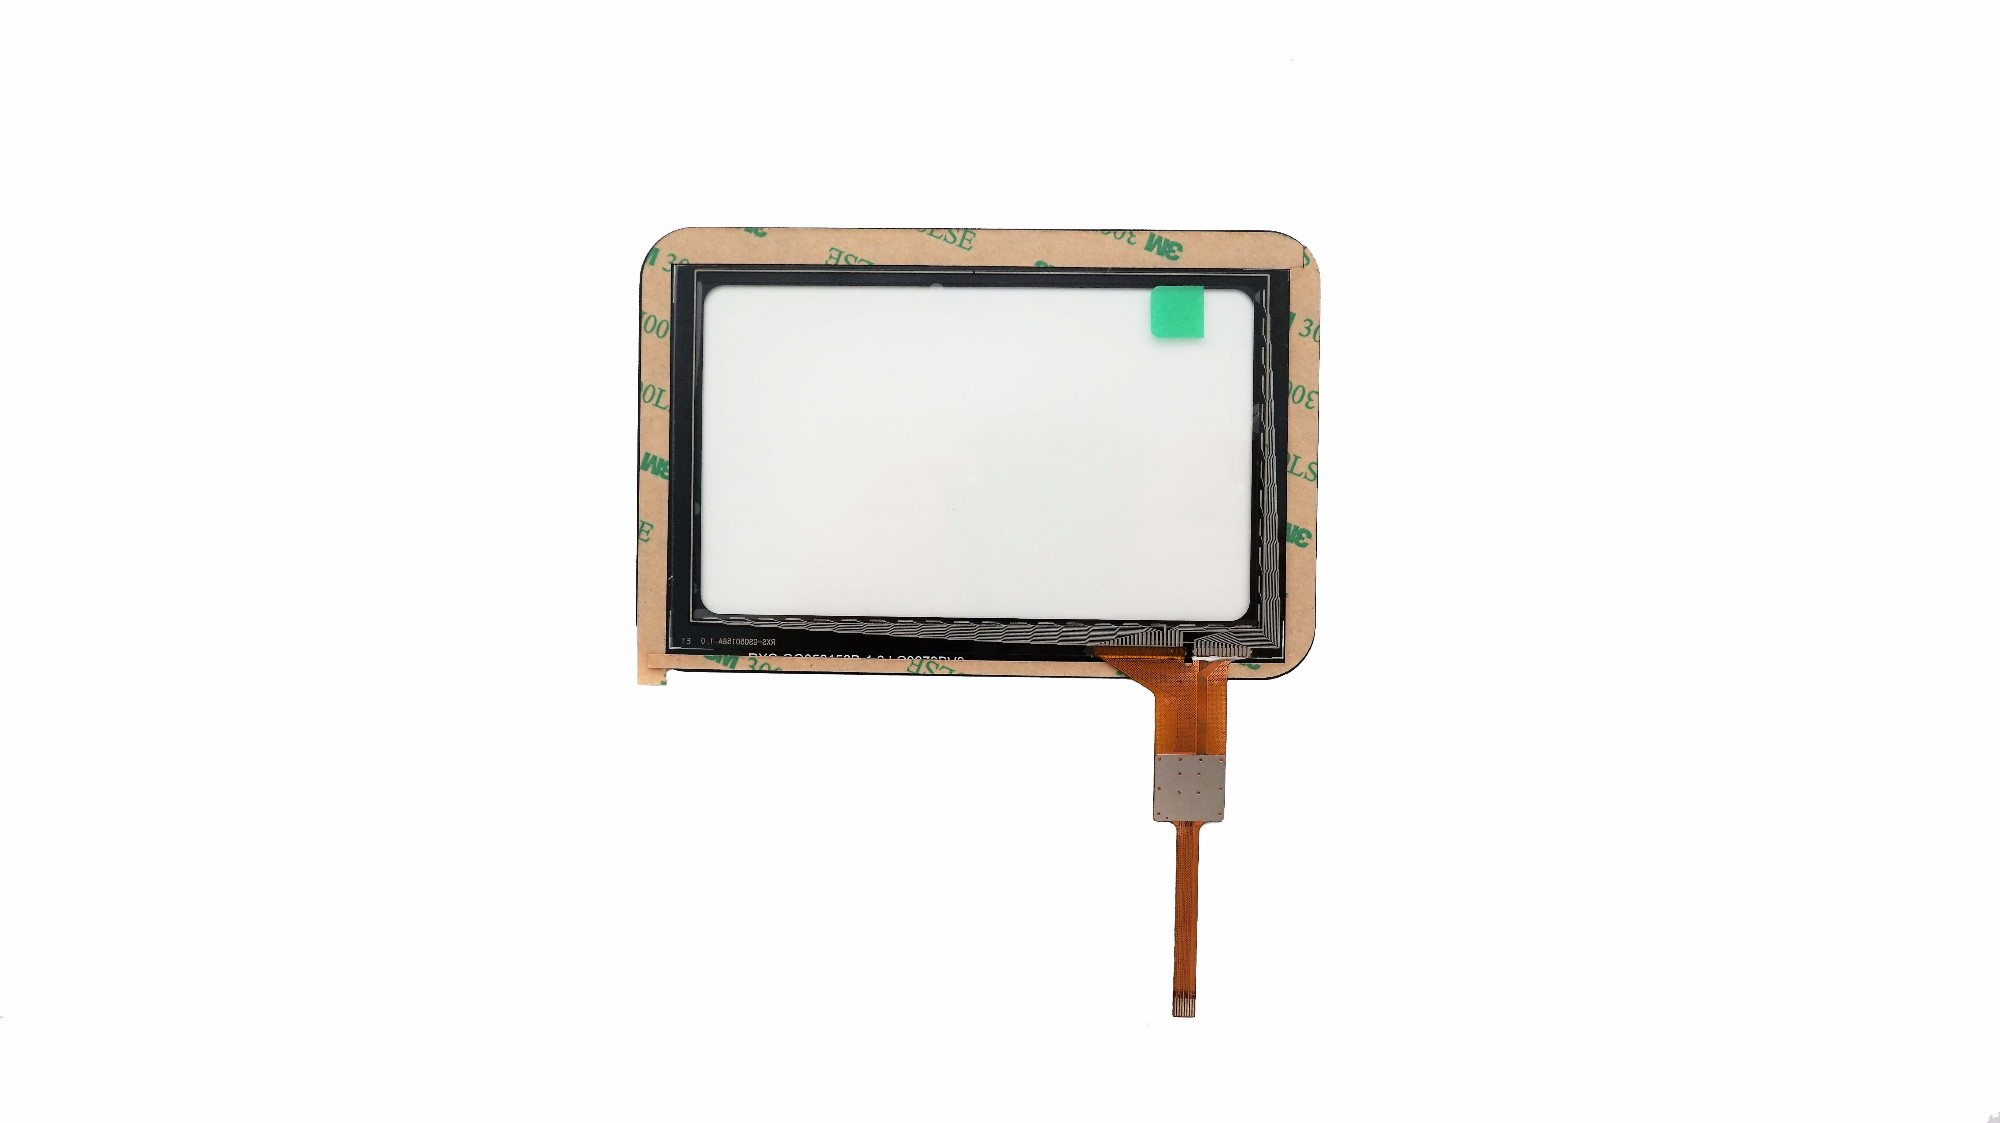 Custom China 5.0 Inch Industrial Control Equipment Gf Pg Gg Touch Panels, 5.0 Inch Industrial Control Equipment Gf Pg Gg Touch Panels Factory, 5.0 Inch Industrial Control Equipment Gf Pg Gg Touch Panels OEM